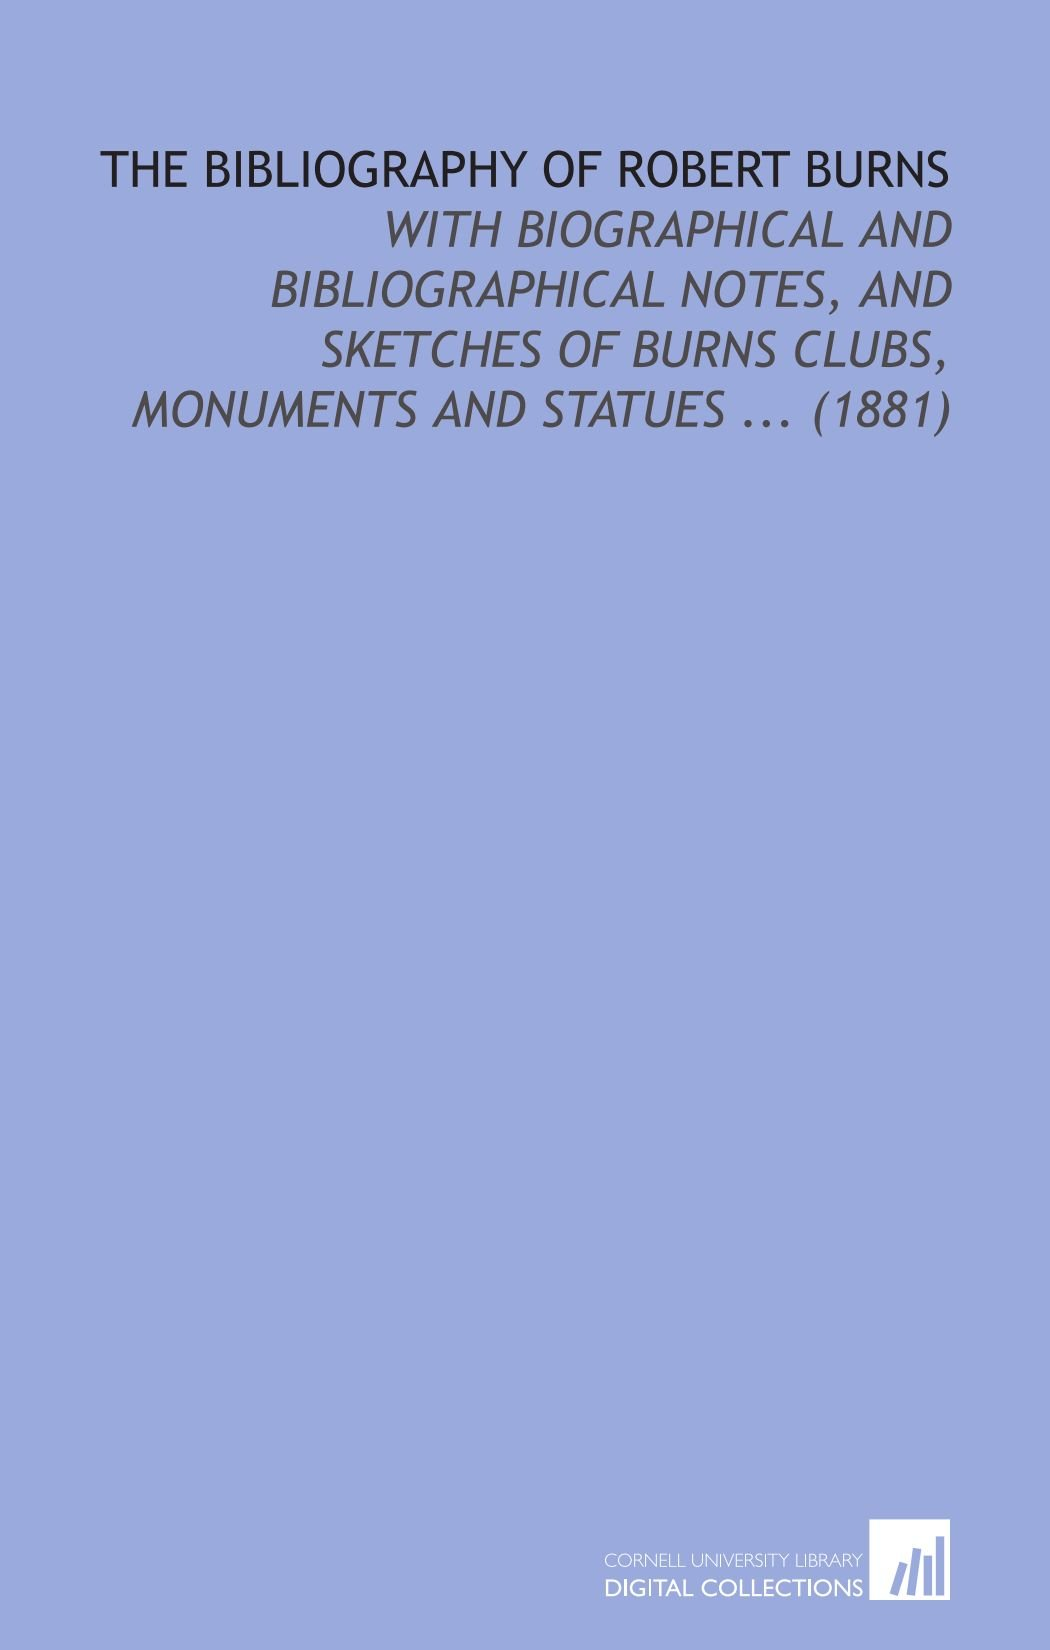 Download The Bibliography of Robert Burns: With Biographical and Bibliographical Notes, and Sketches of Burns Clubs, Monuments and Statues ... (1881) ebook